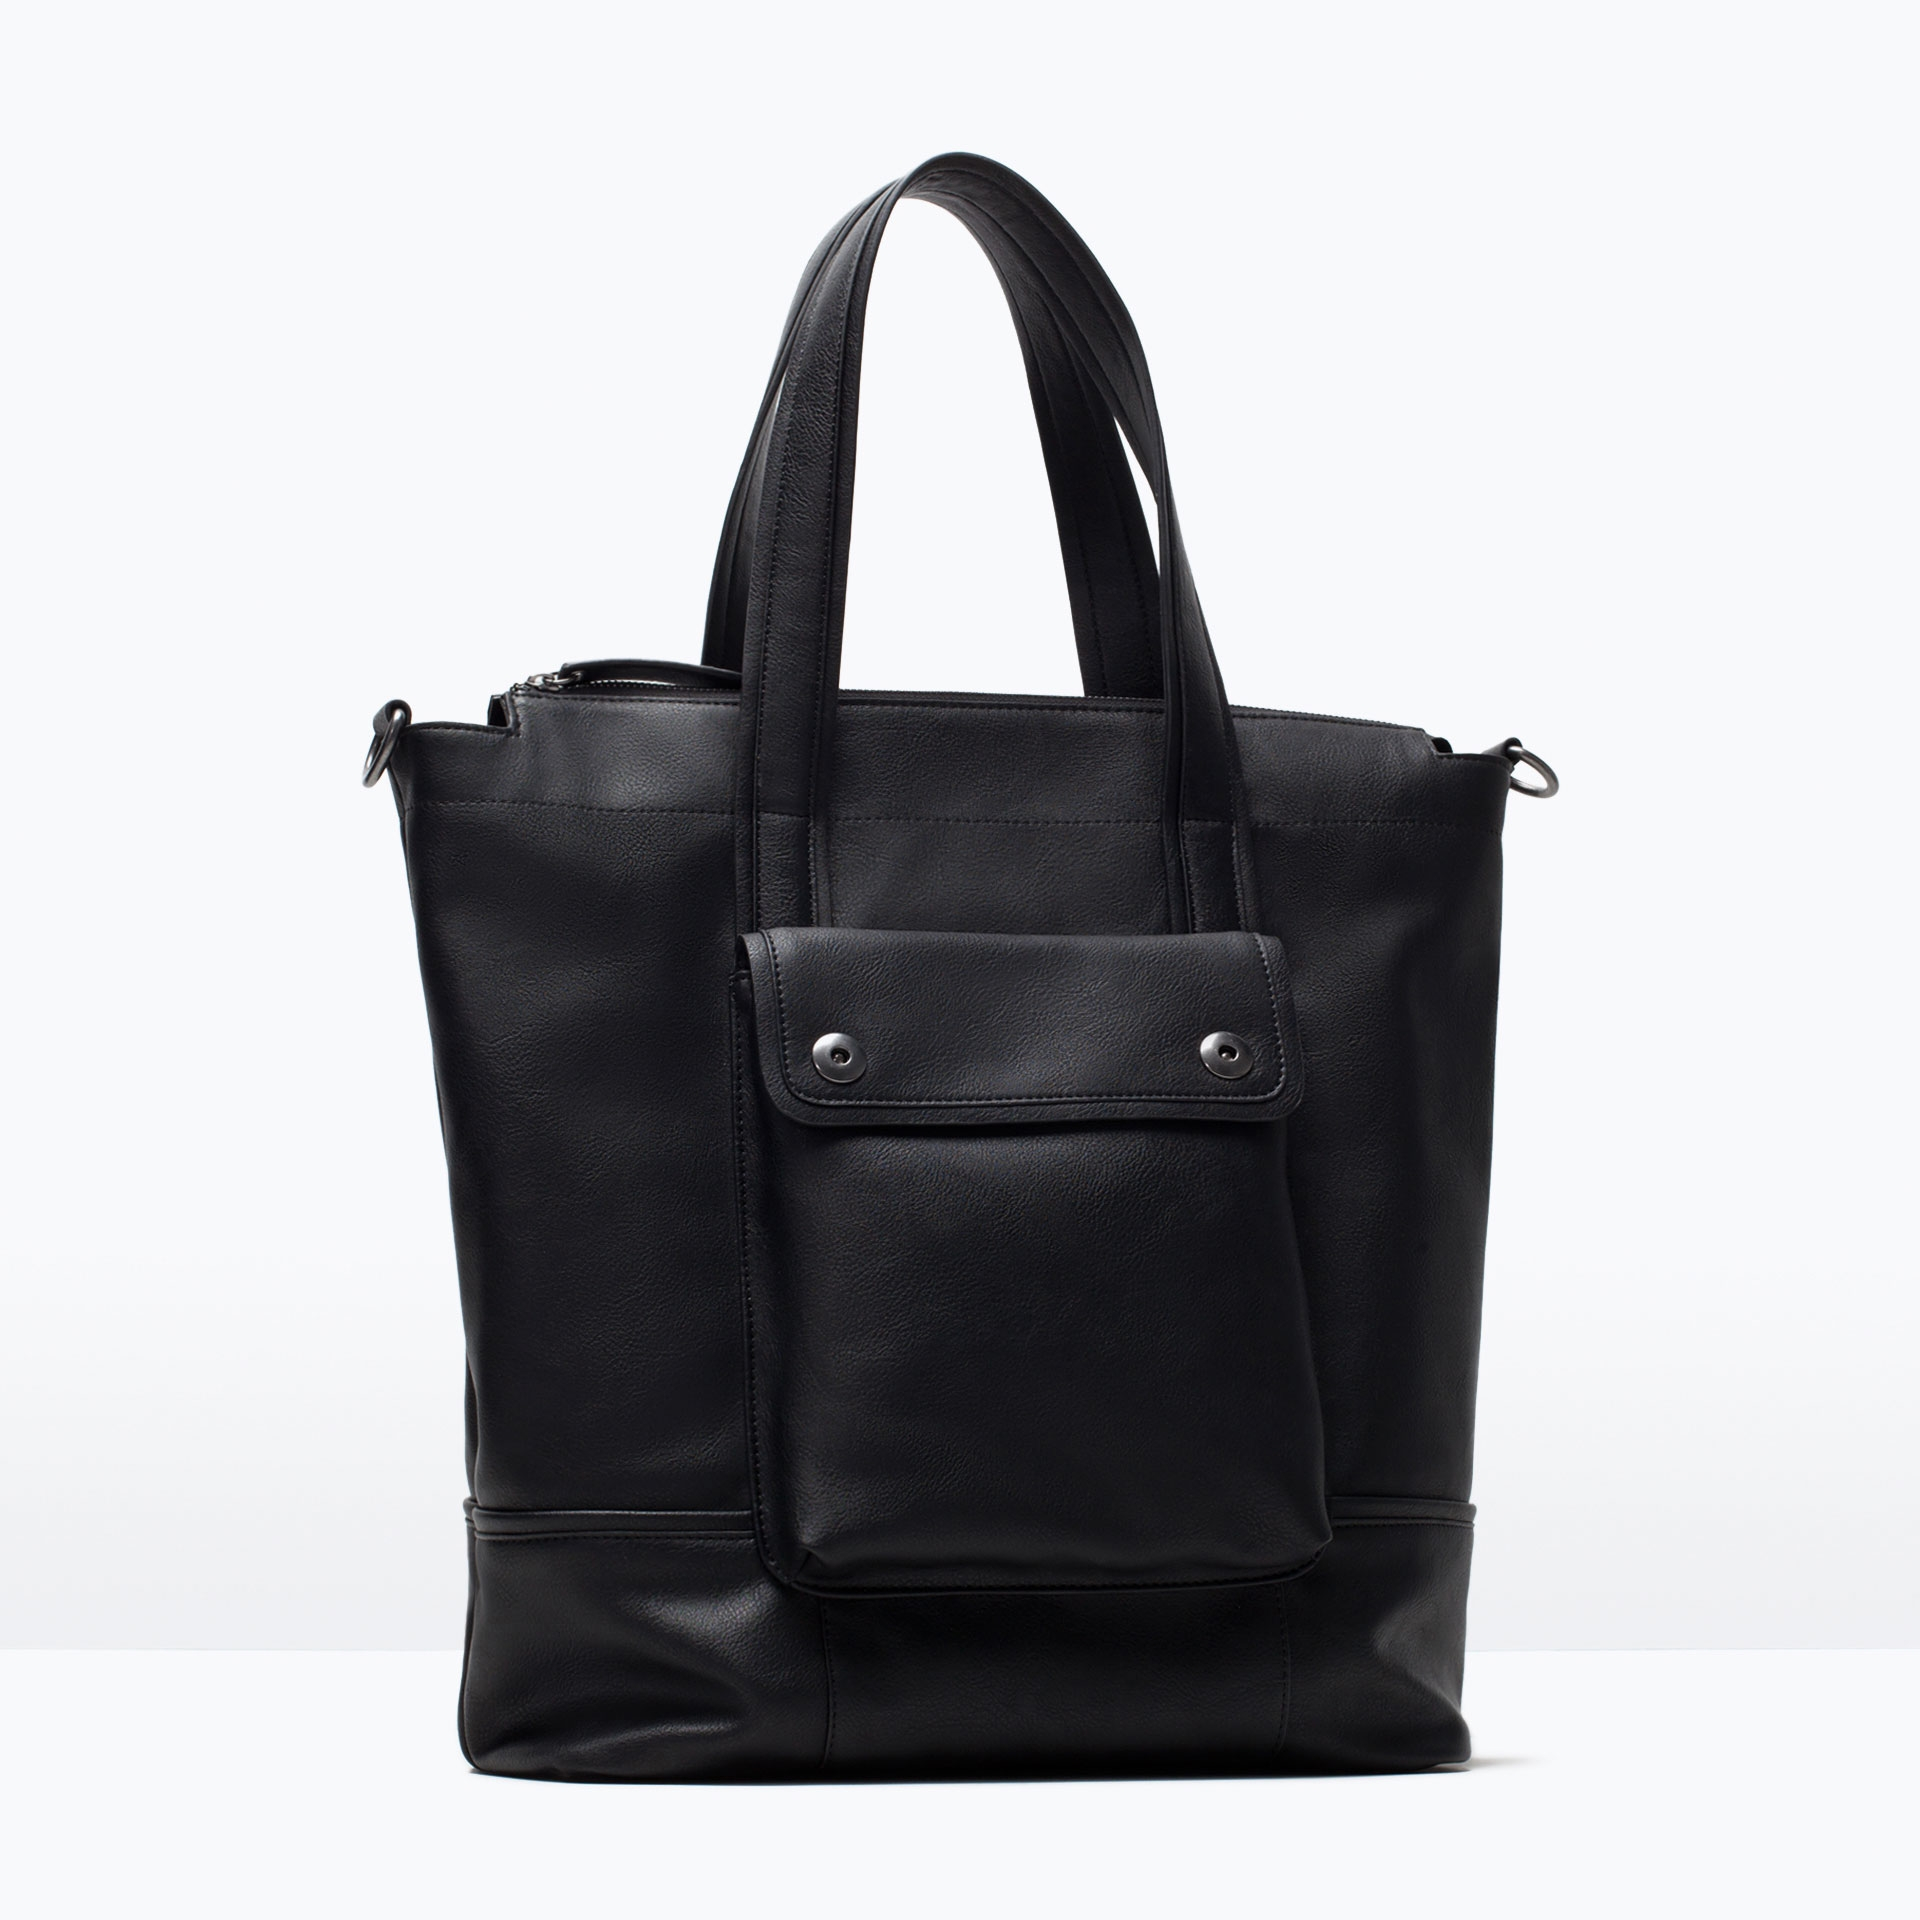 Zara Shopper Bag Black Zara Shopper Bag With Front